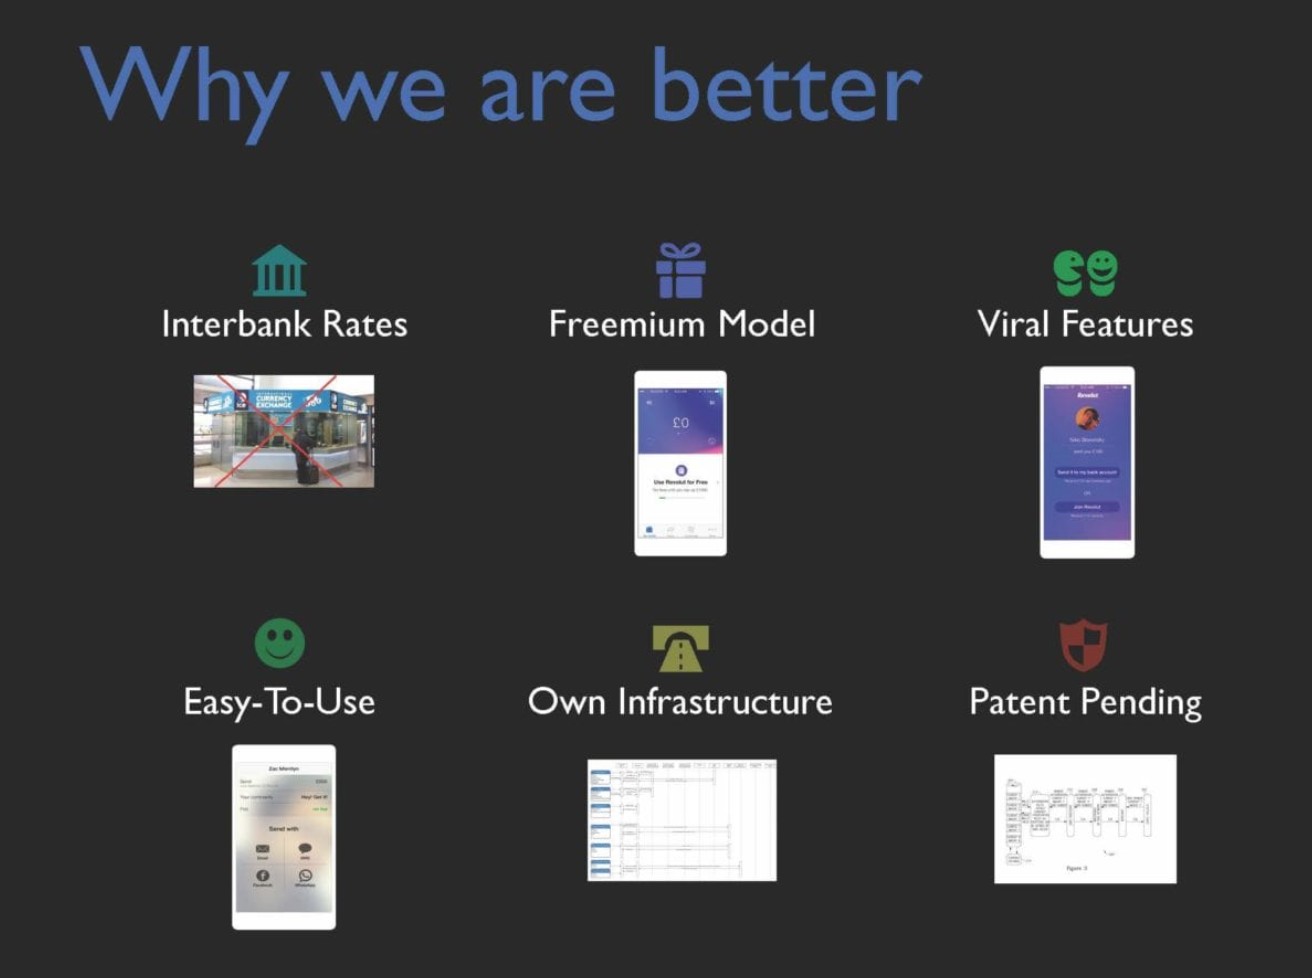 Revolut's opening slide on their pitch to investors, explaining theirUVP